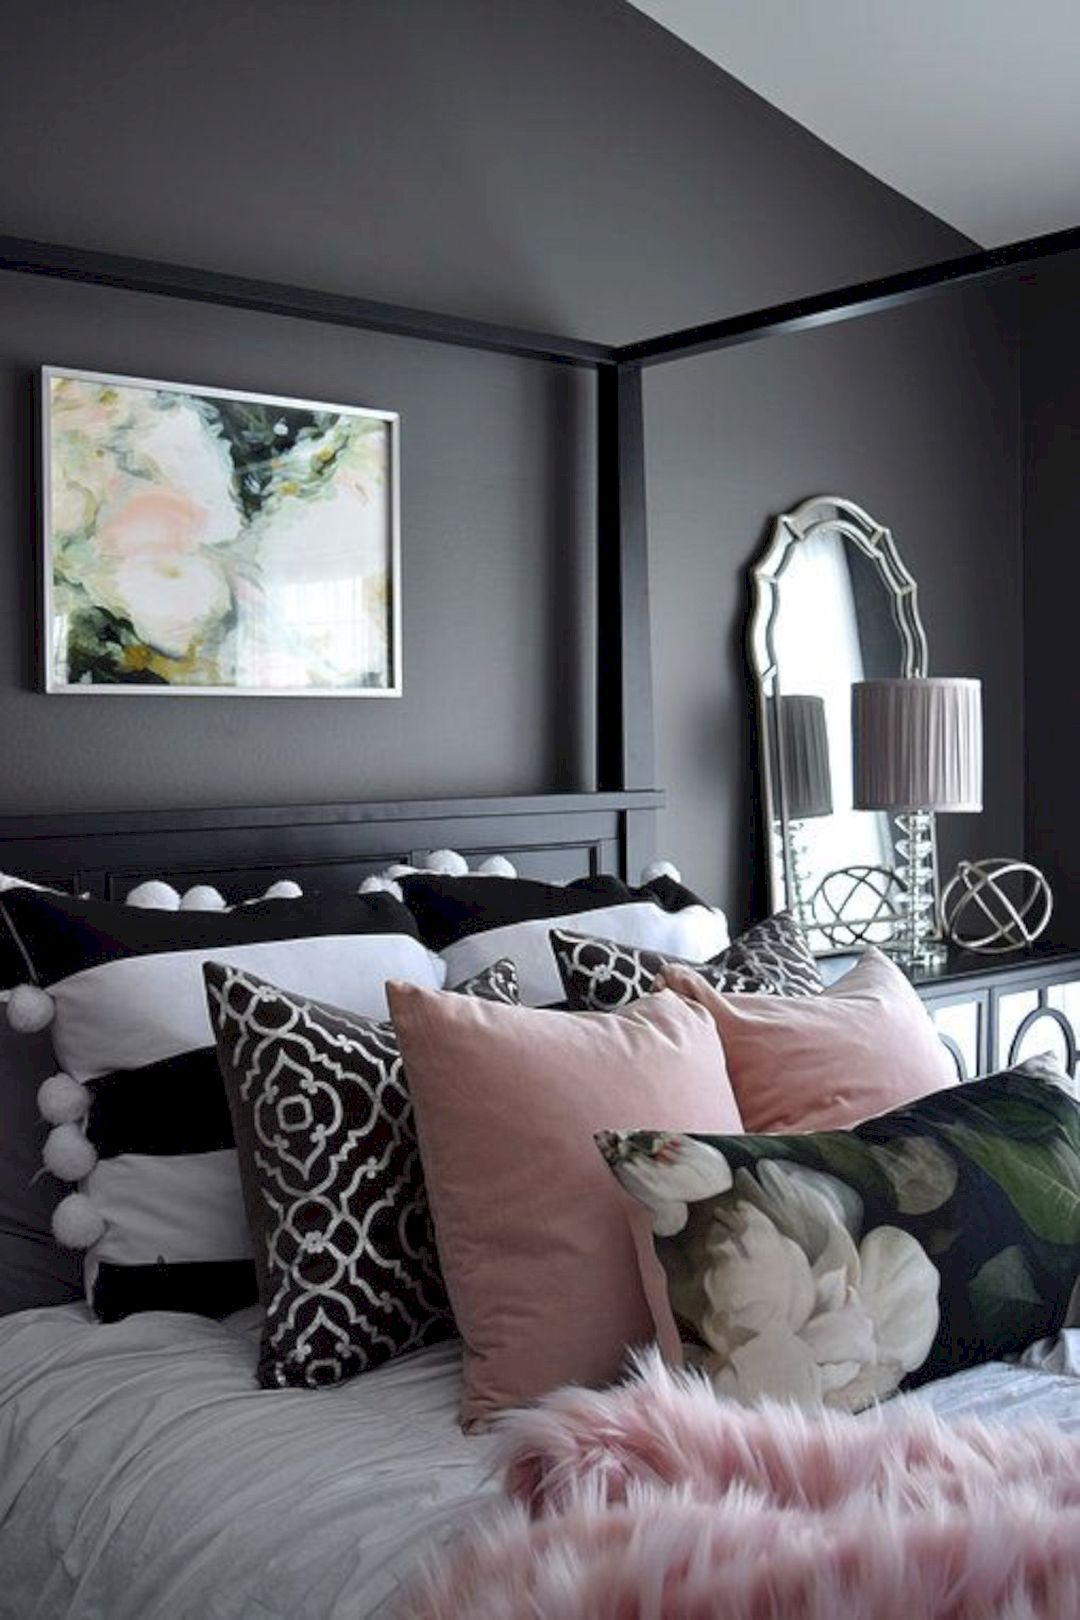 Delicieux 16 Awesome Black Furniture Bedroom Ideas  Https://www.futuristarchitecture.com/32371 Black Furniture Bedroom Ideas. Html